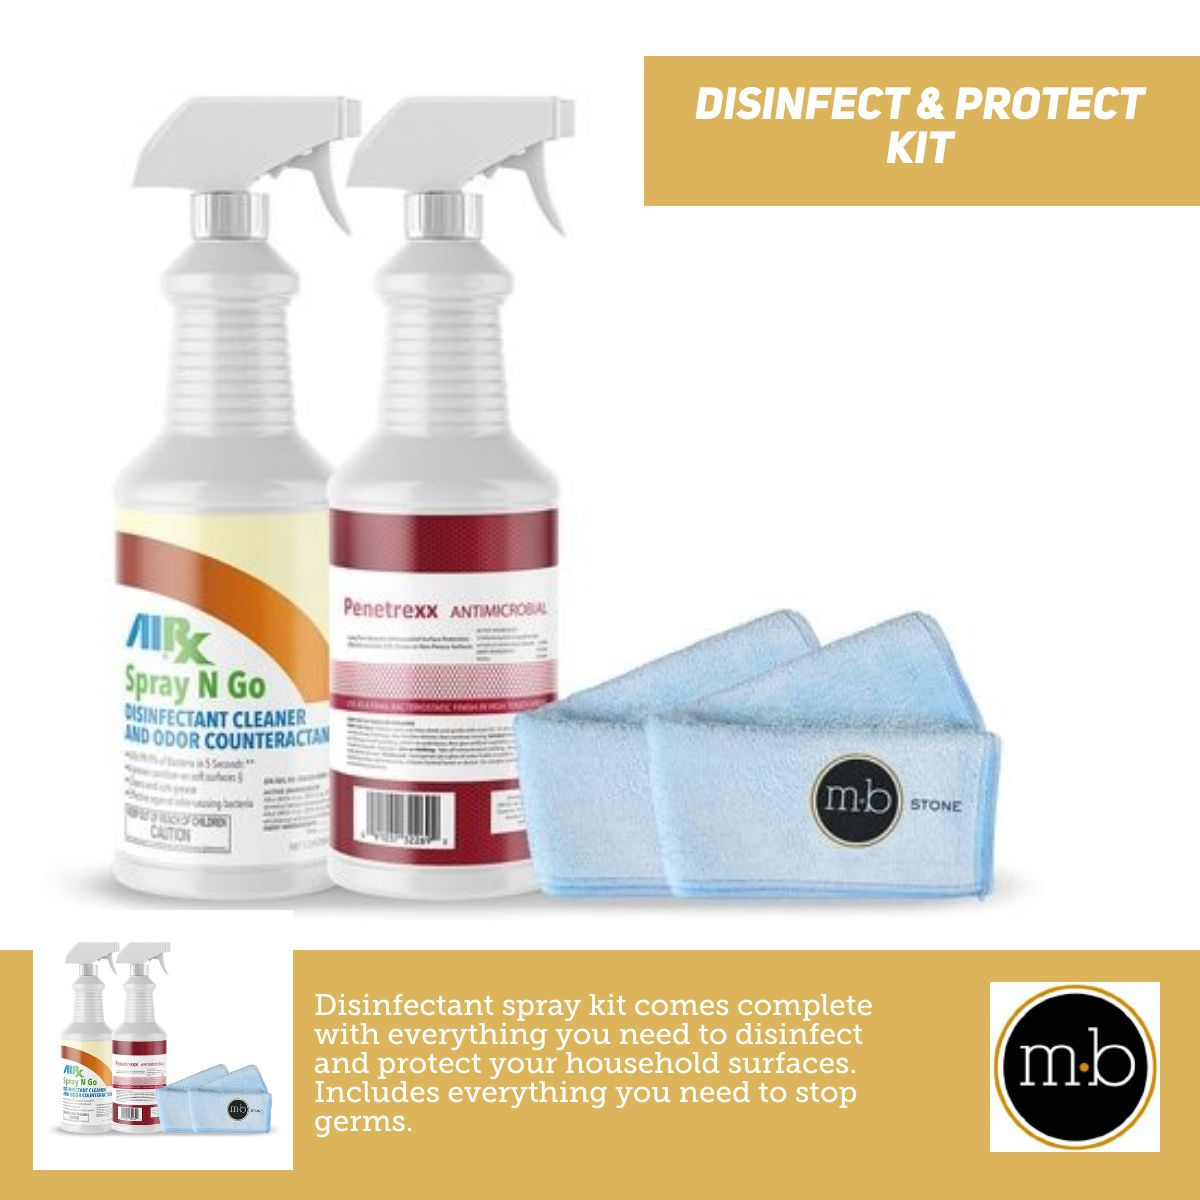 Disinfect & Protect Kit - Disinfectant Sprays with Microfiber Towels